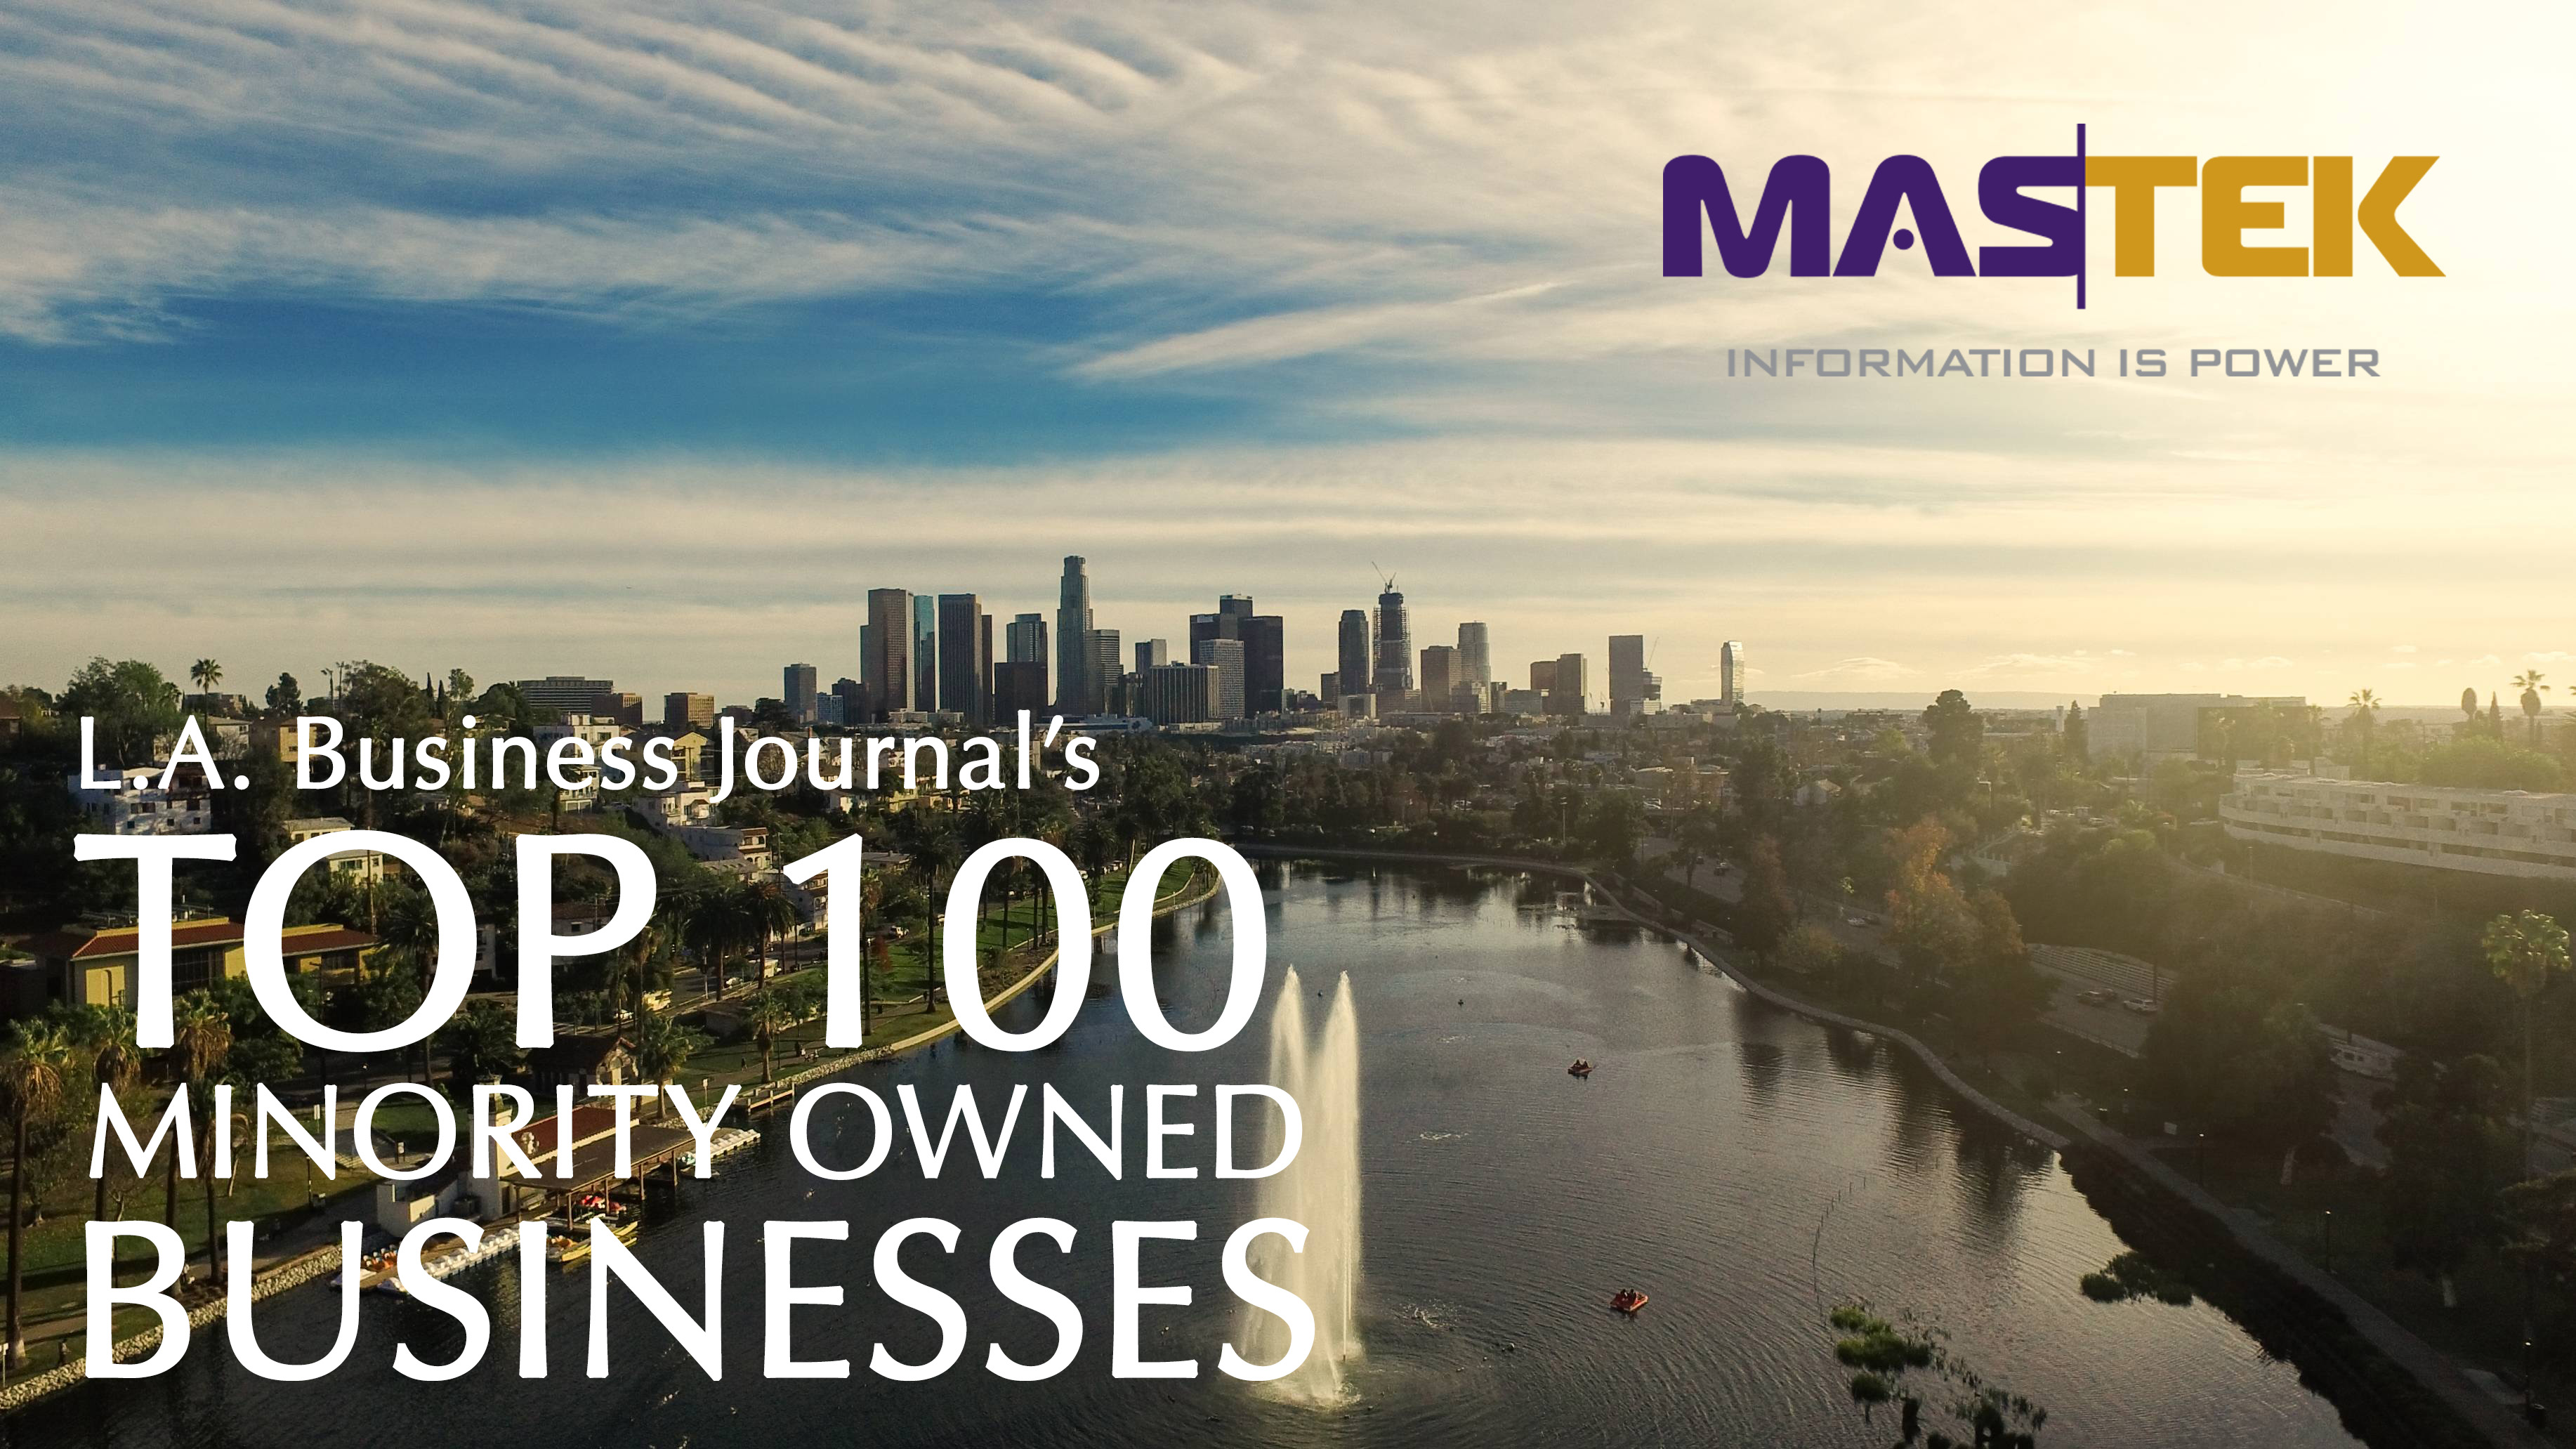 MasTek, Inc. ranks number 84 in the Los Angeles Business Journal's Top 100 Minority-Owned Businesses List.